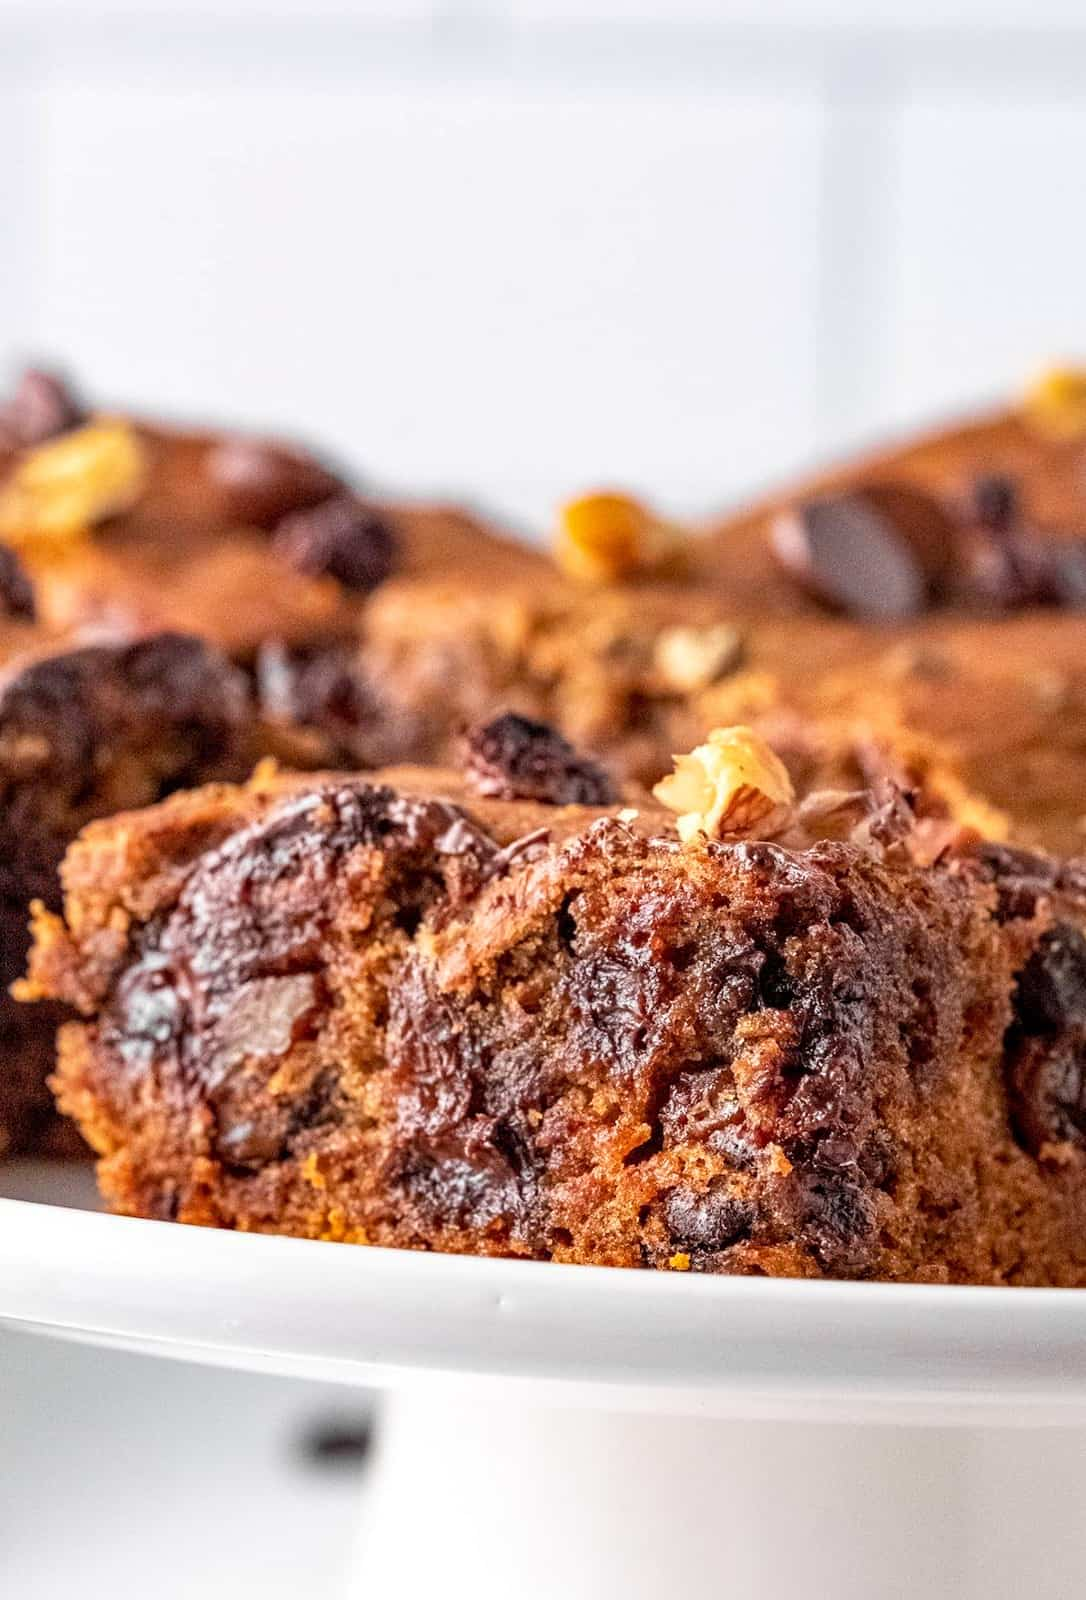 Close up of Vintage Chocolate Chip Applesauce Cake on white stand showing gooey chocolate chips.